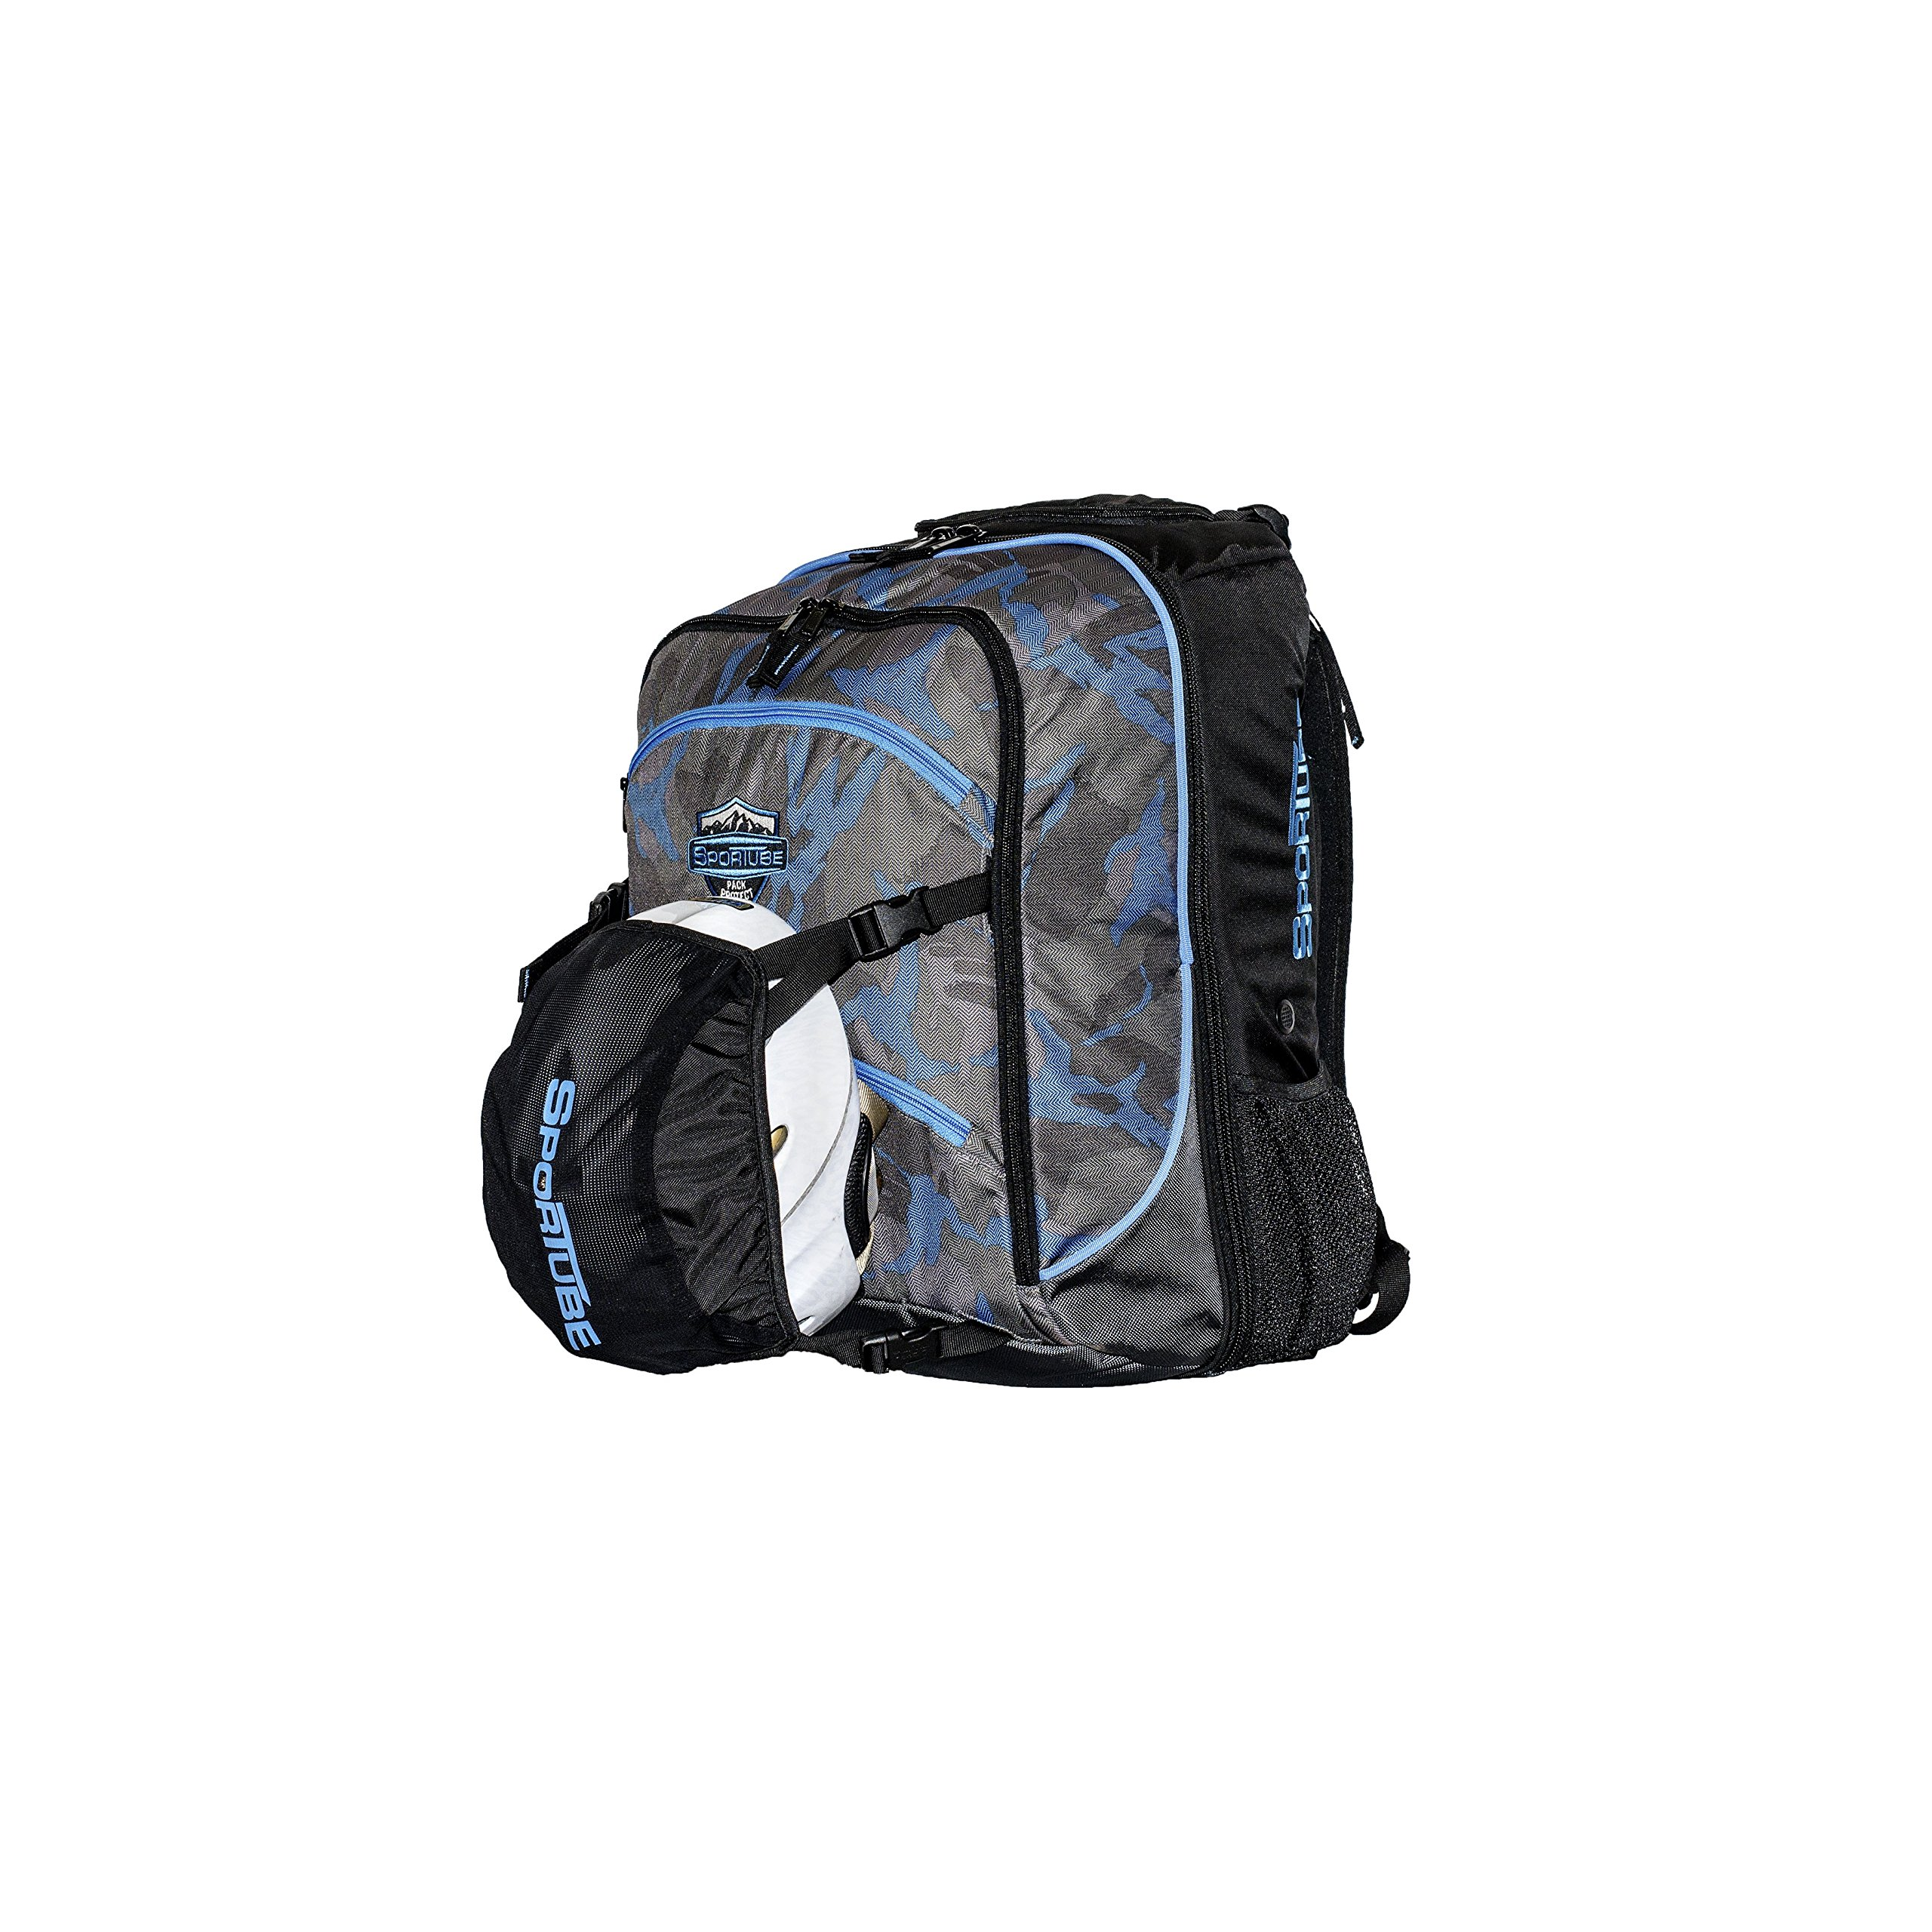 Sportube Overheader Padded Gear and Boot Carry on Backpack Camo by Sportube